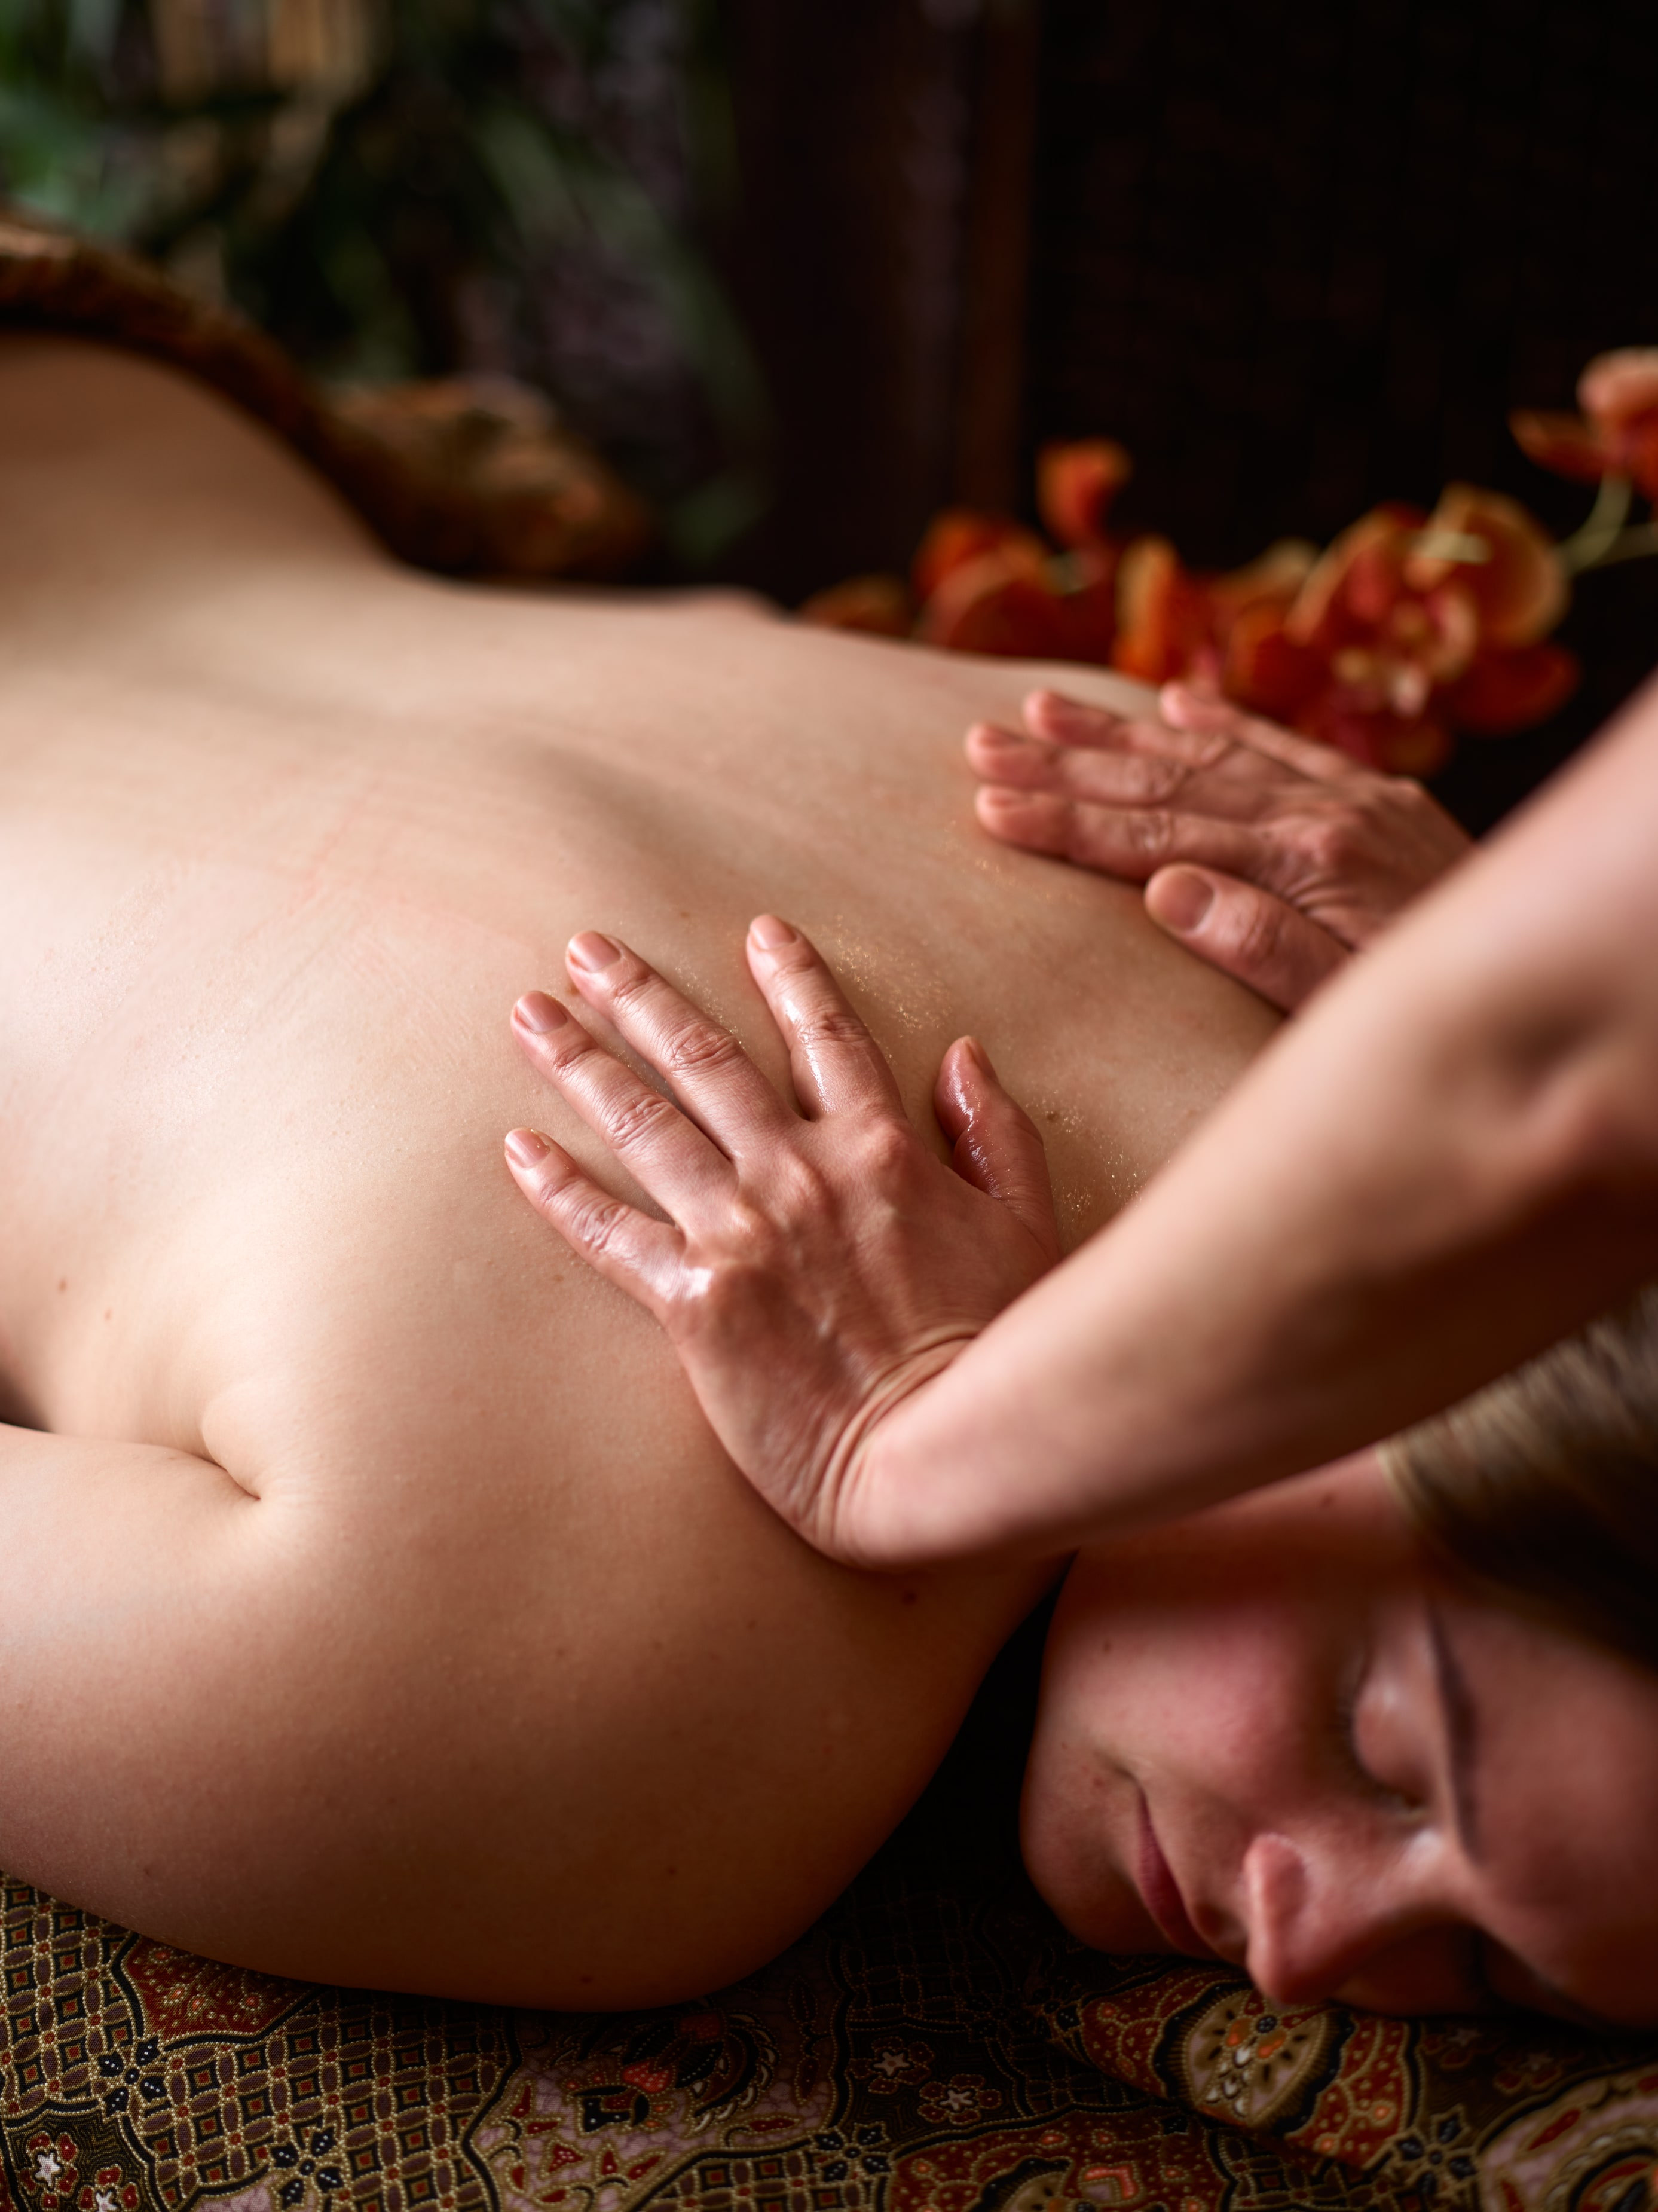 Using Swedish massage techniques you will find yourself drift away into an oasis of calm and return feeling lighter during the anti-stress massage.